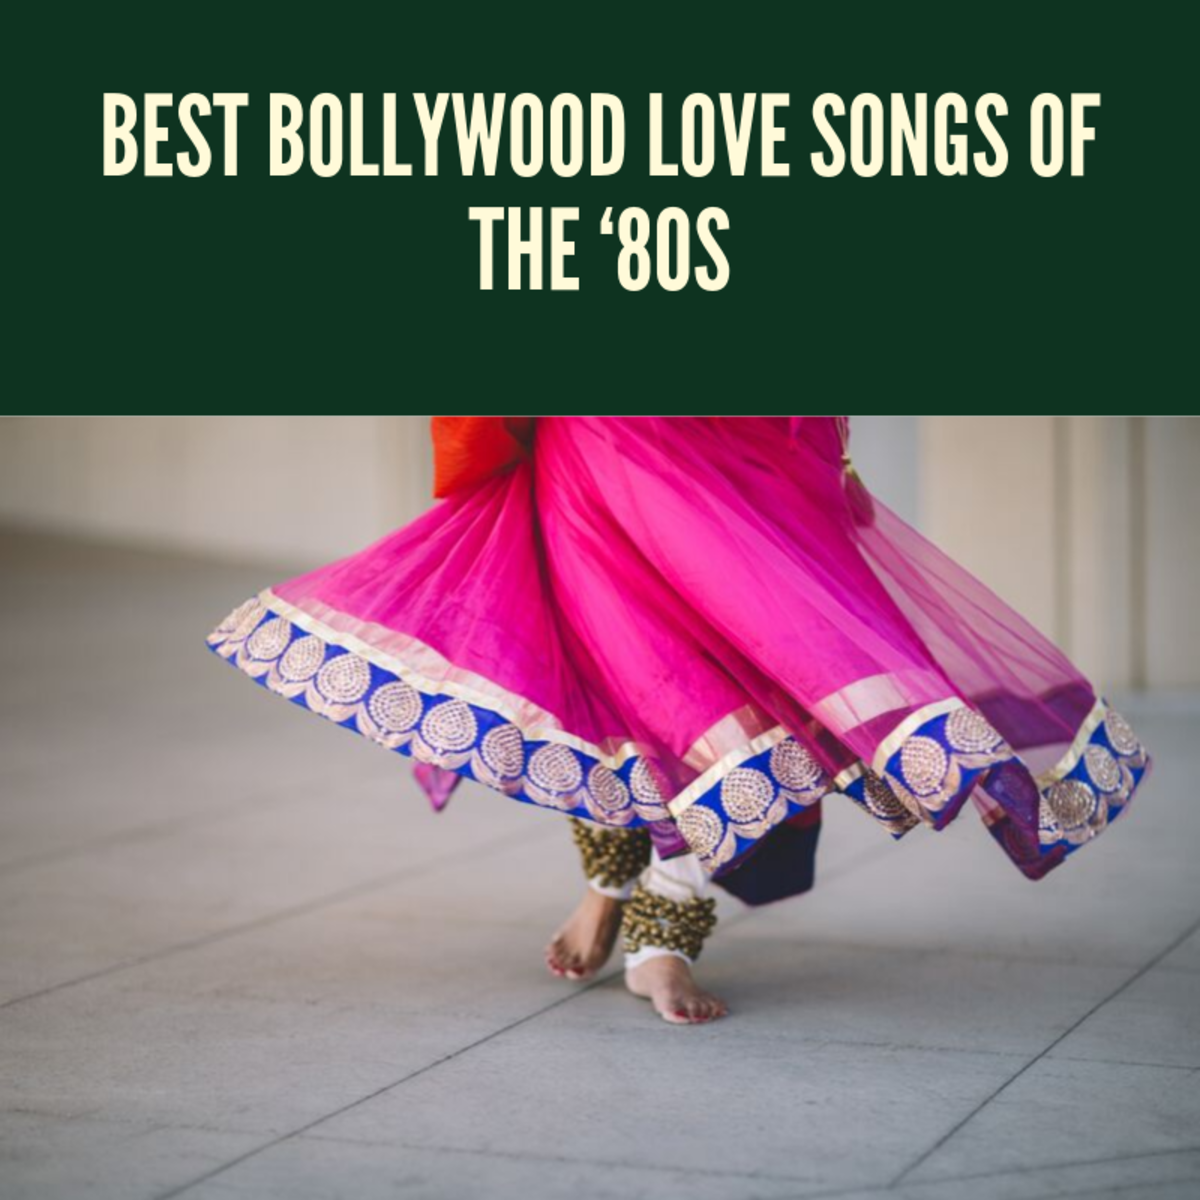 100 Best Bollywood Love Songs of the '80s